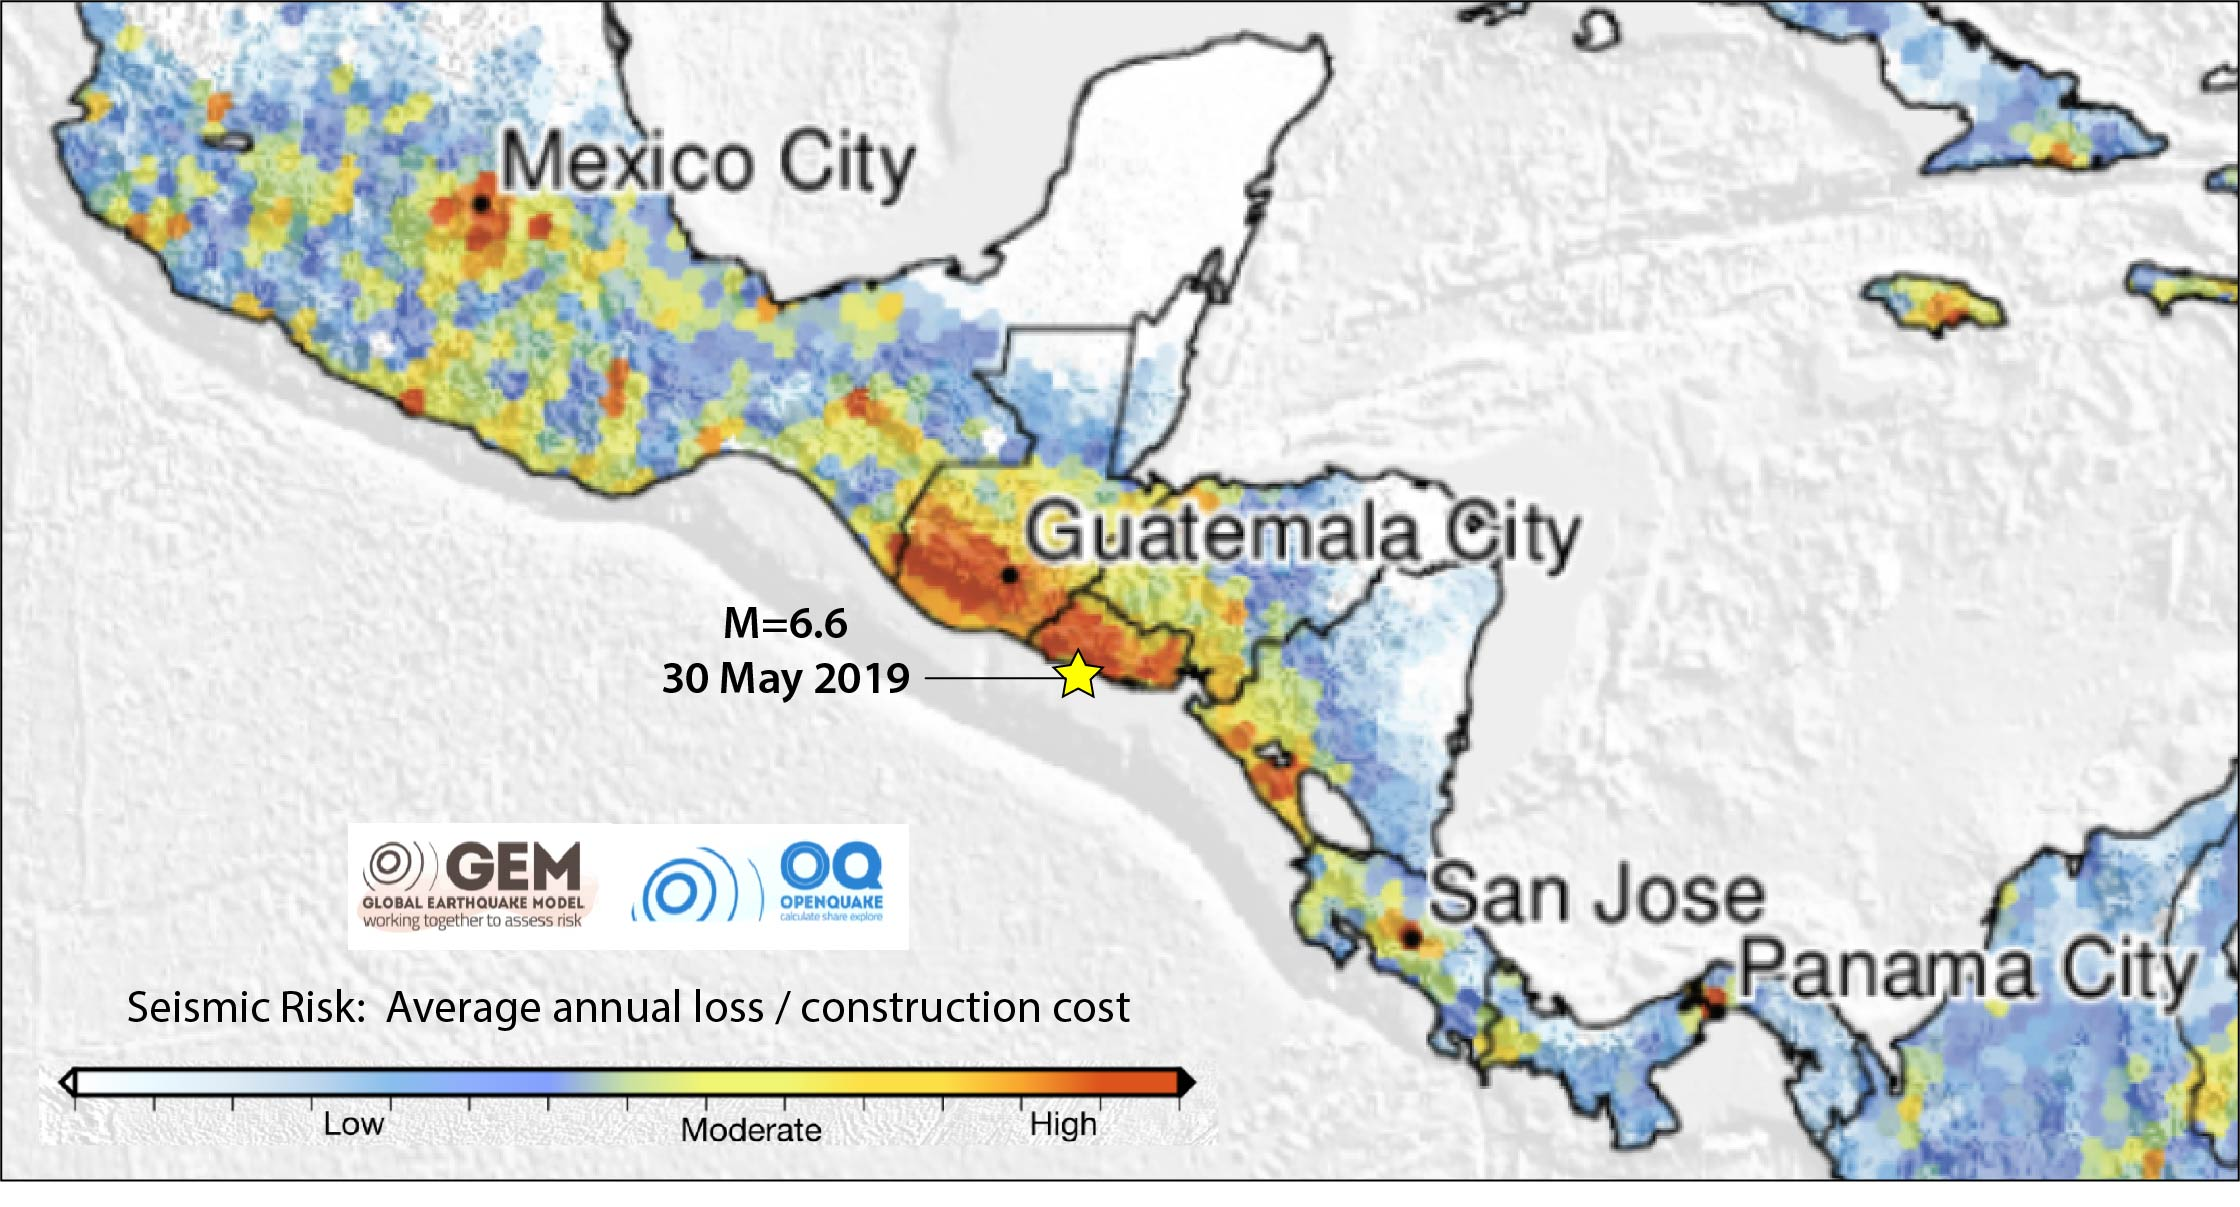 El Salvador Earthquake: A Moderate Event in An Area of ... on georgetown on world map, costa rica on world map, el salvador map, cuba on world map, tenochtitlan on world map, recife on world map, panama on world map, tegucigalpa on world map, cabinda on world map, bahamas on world map, altamira on world map, santiago on world map, port of spain on world map, la habana on world map, salvador brazil on world map, arenal volcano on world map, santo domingo on world map, monterey world map, sanaa on world map, conakry on world map,